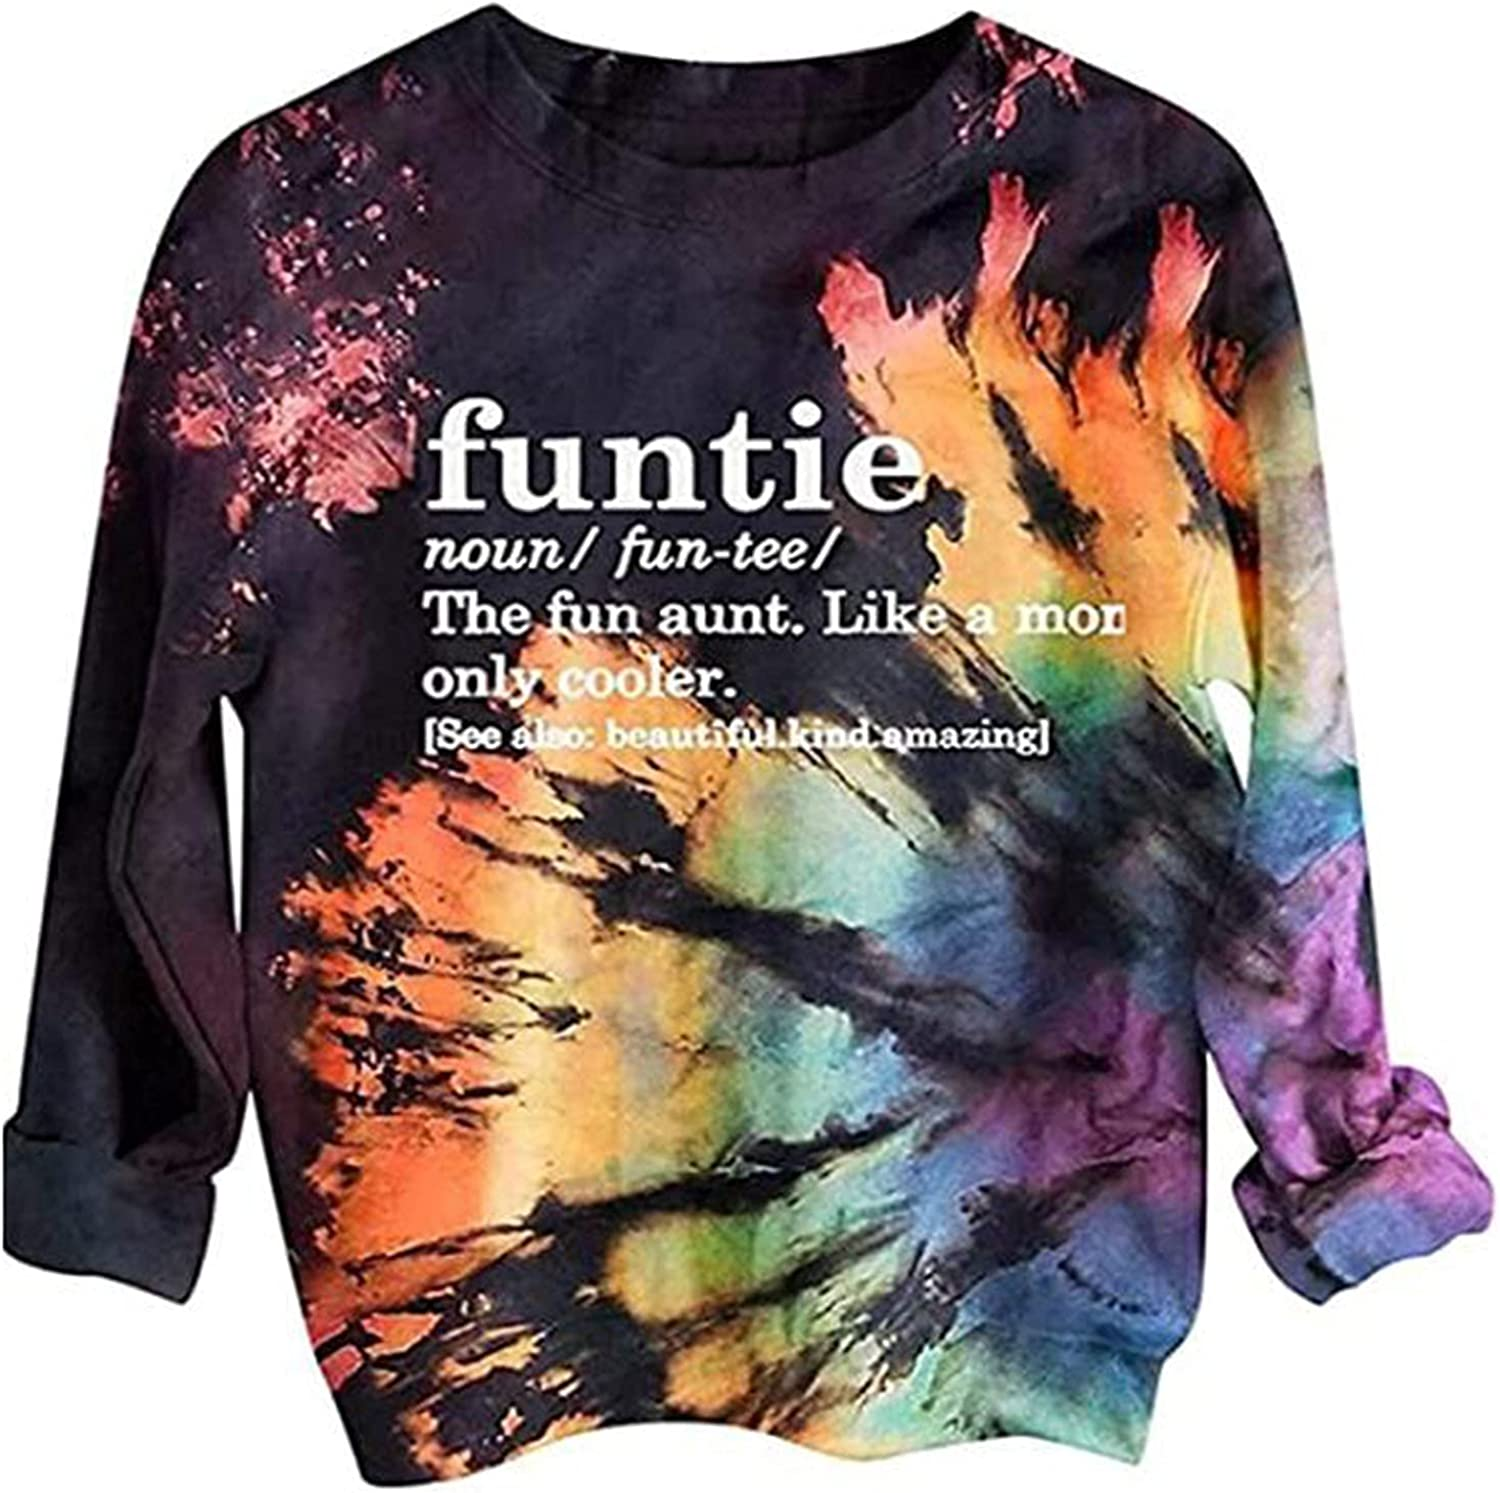 Fall Sweatshirts for Women Long Ranking TOP9 Loose Tops safety Sleeve Casual Shirts